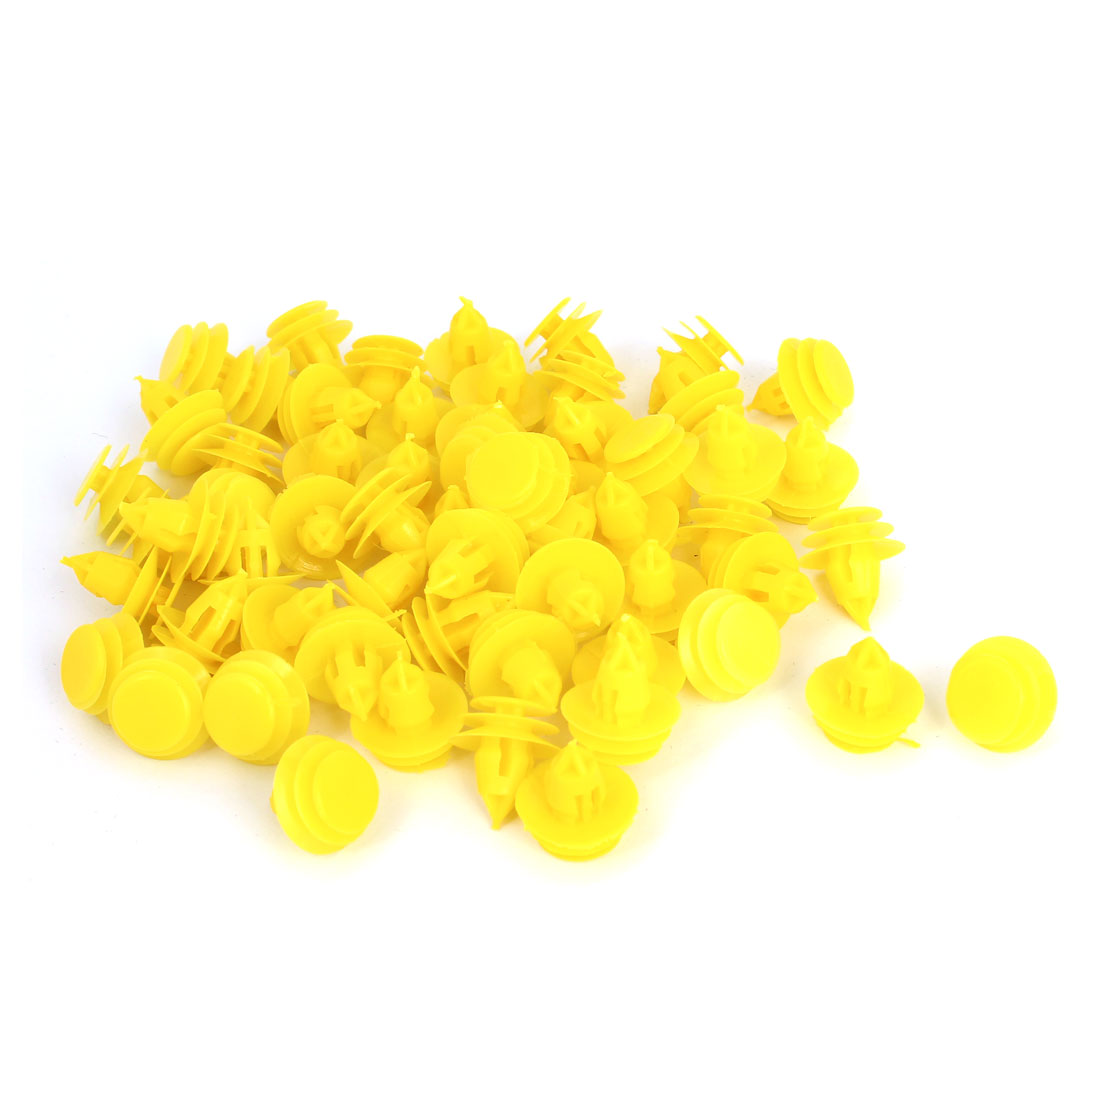 100 Pcs Yellow Plastic Door Rivets Car Bumper Fender Retainer Clips 9mm Hole